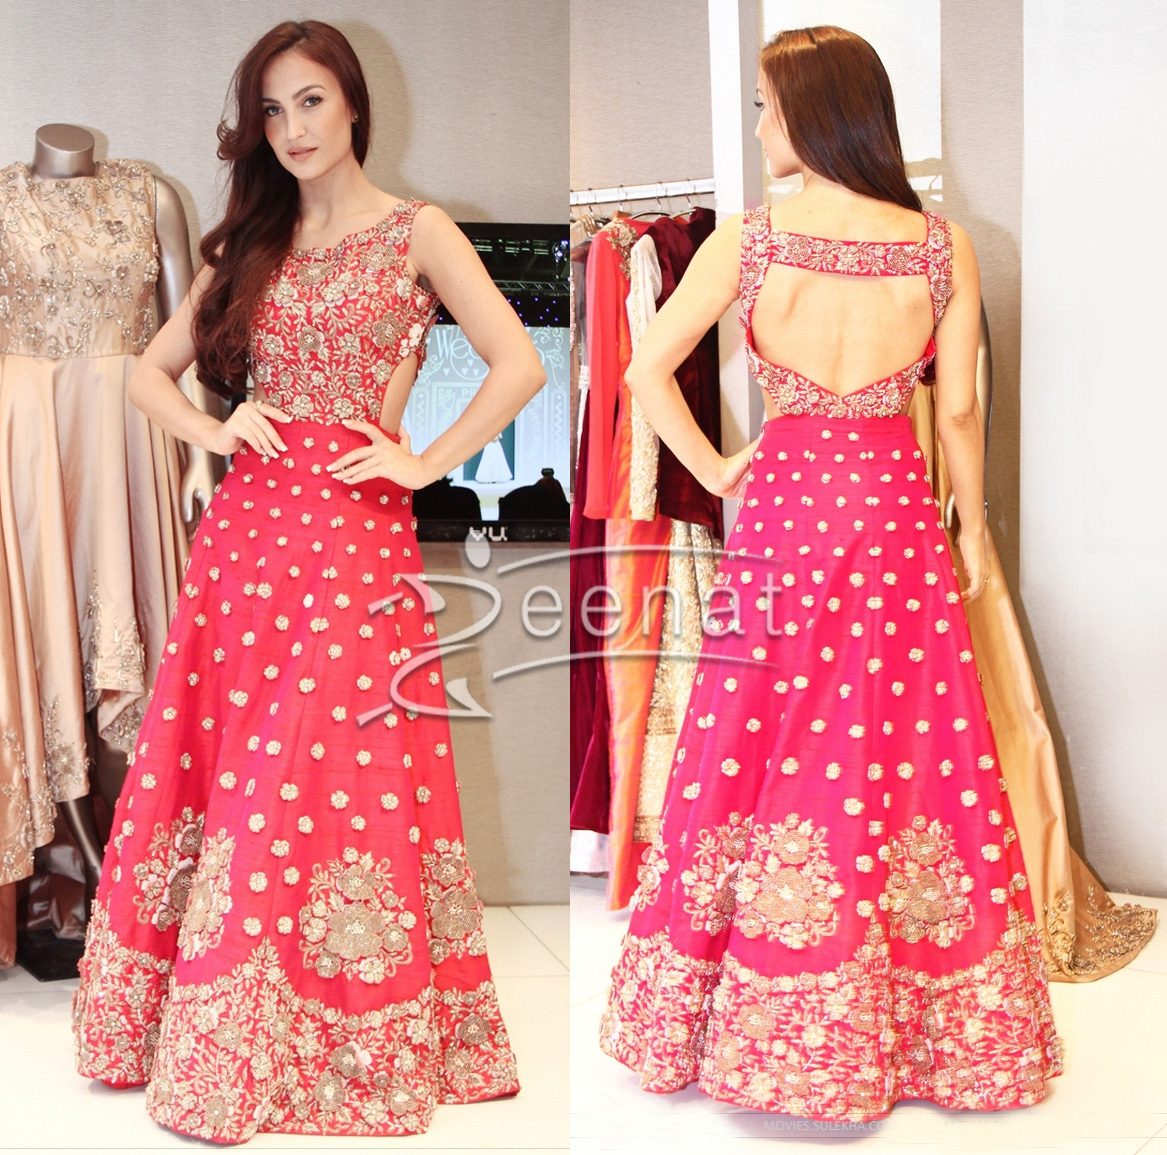 Elli Avram In Backless Lehenga Choli